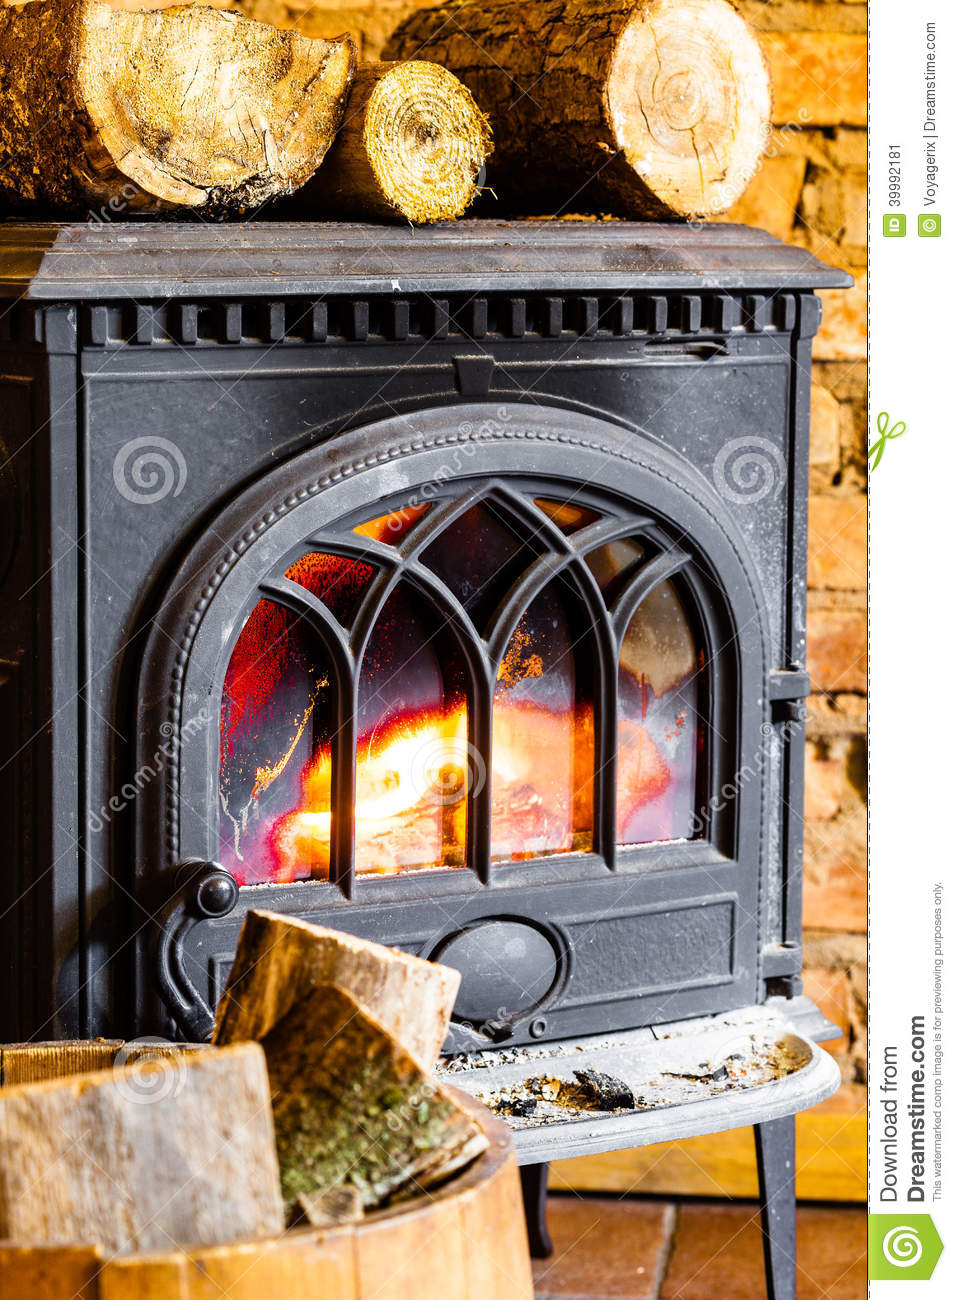 fireplace with fire flame and firewood in barrel interior heating